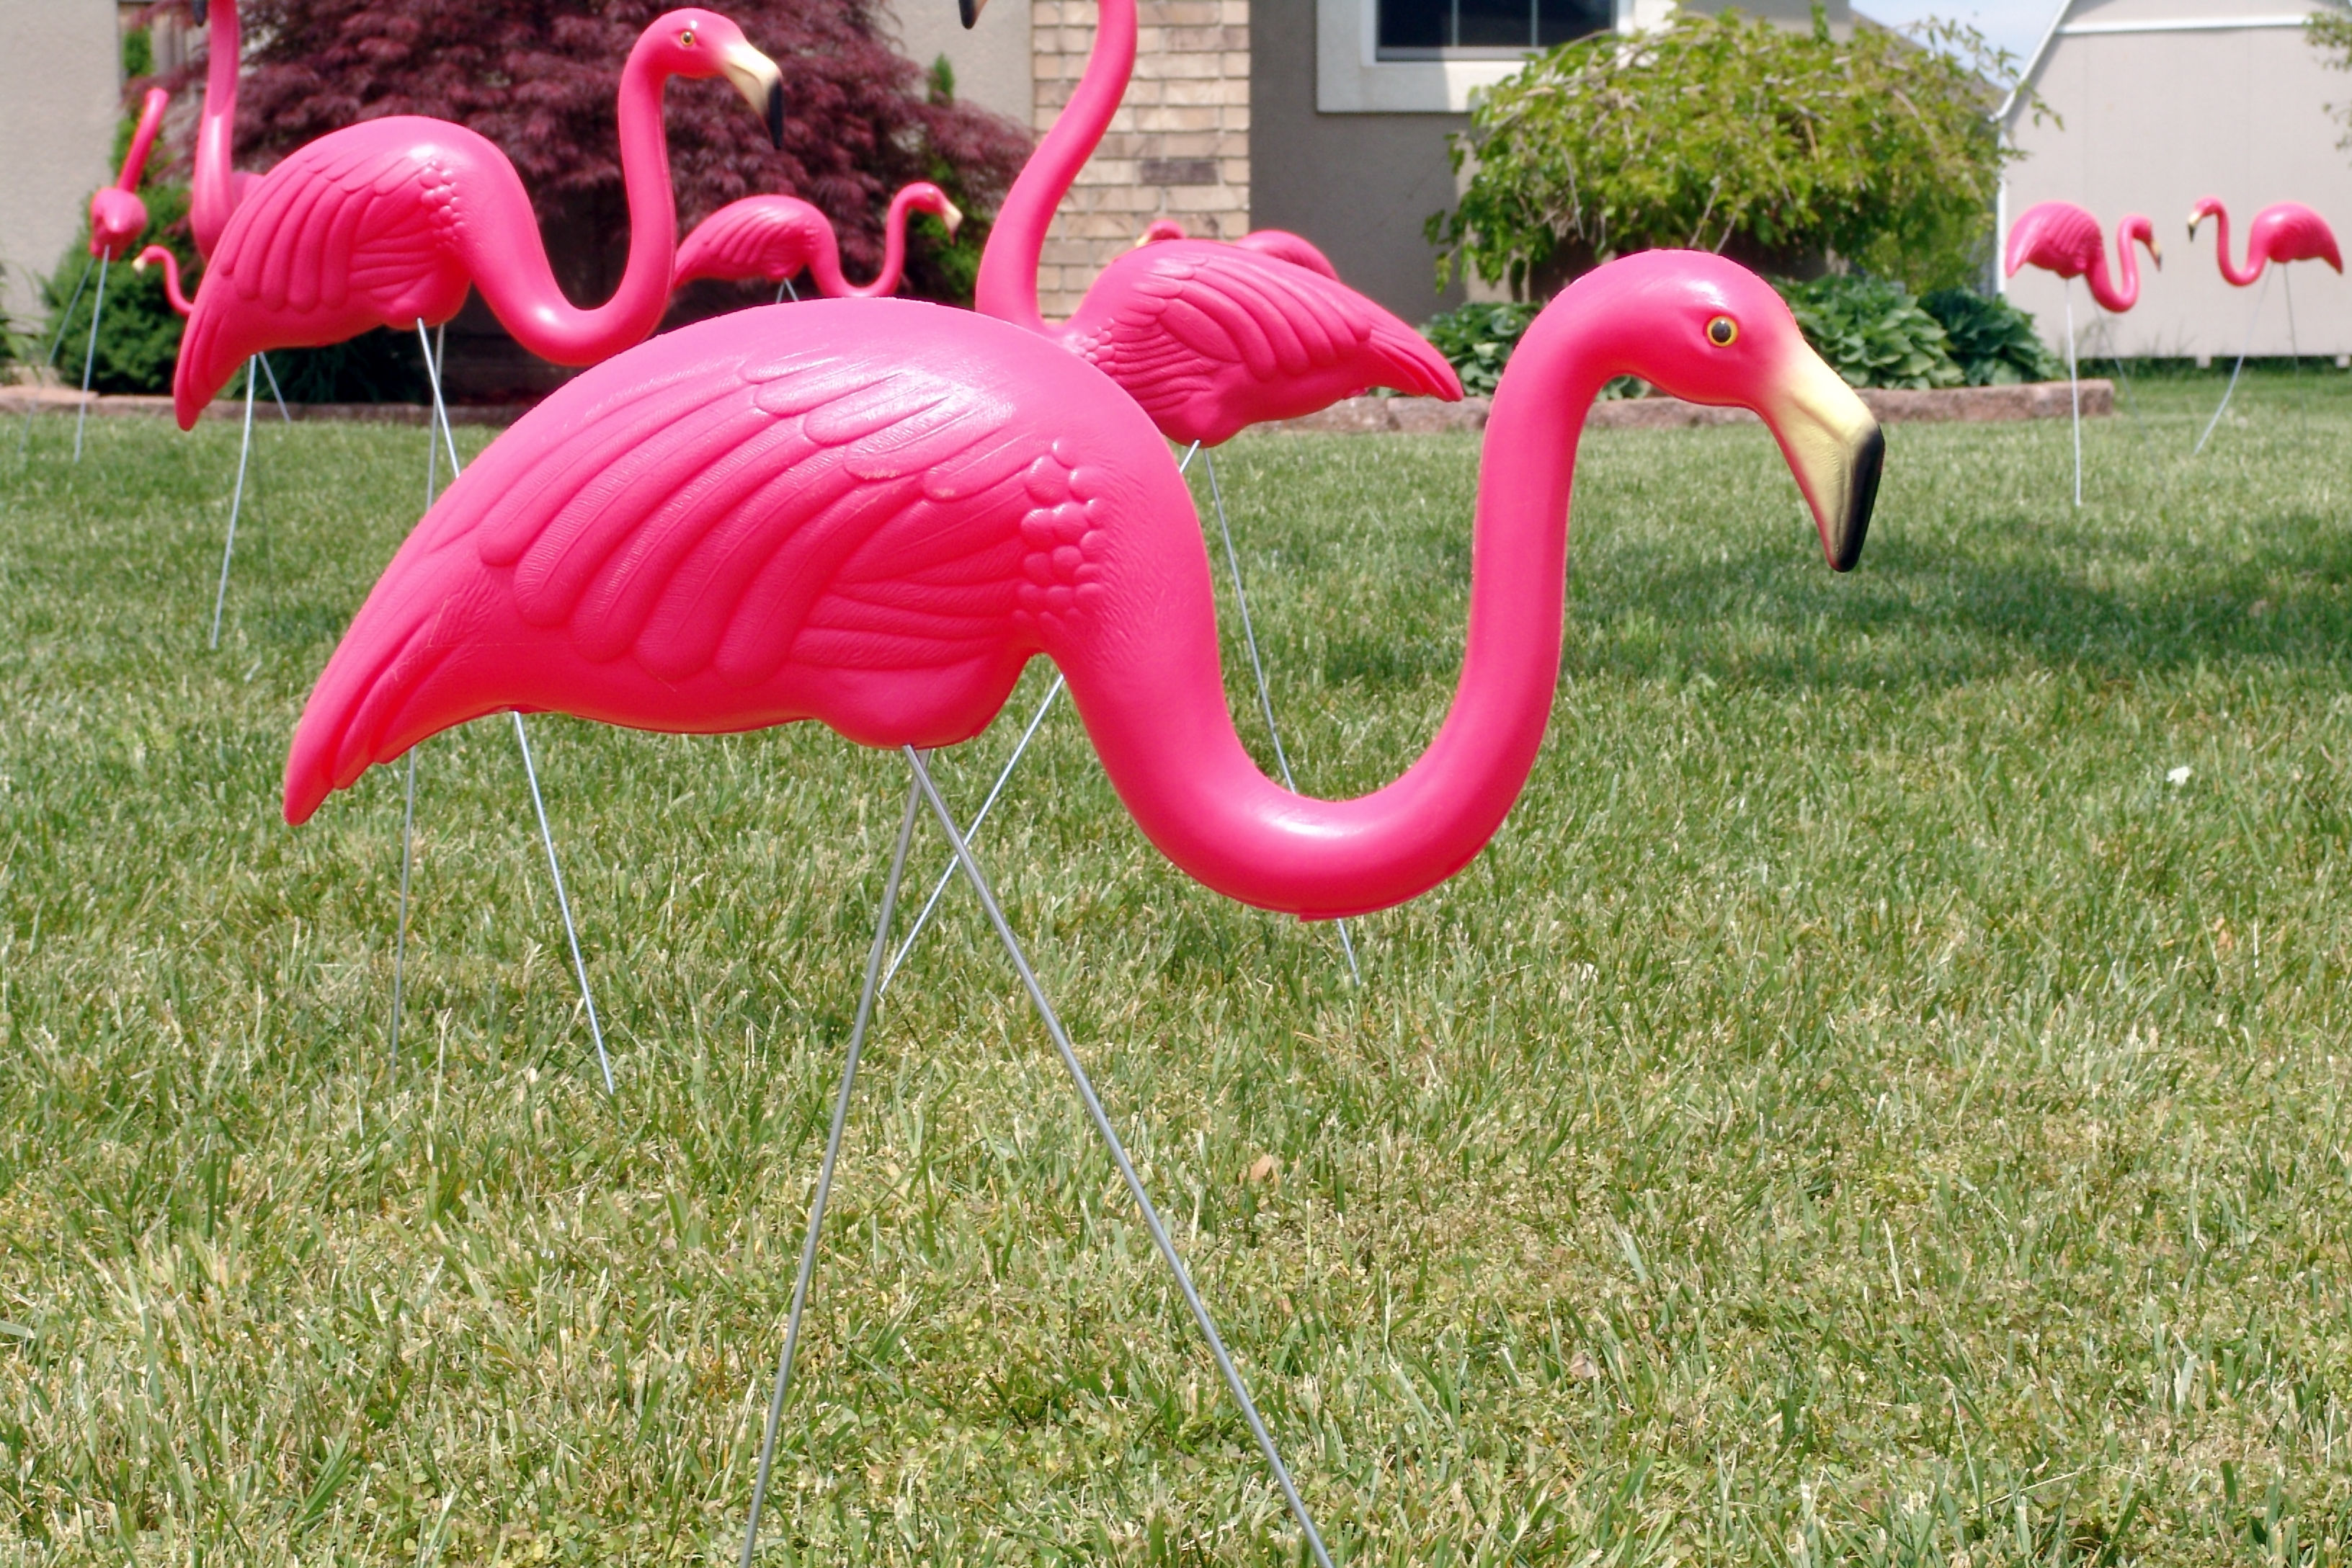 WATCH: The Internet Is Obsessed with These Photos of the Man Who Invented the Plastic Flamingo—and We Are Too